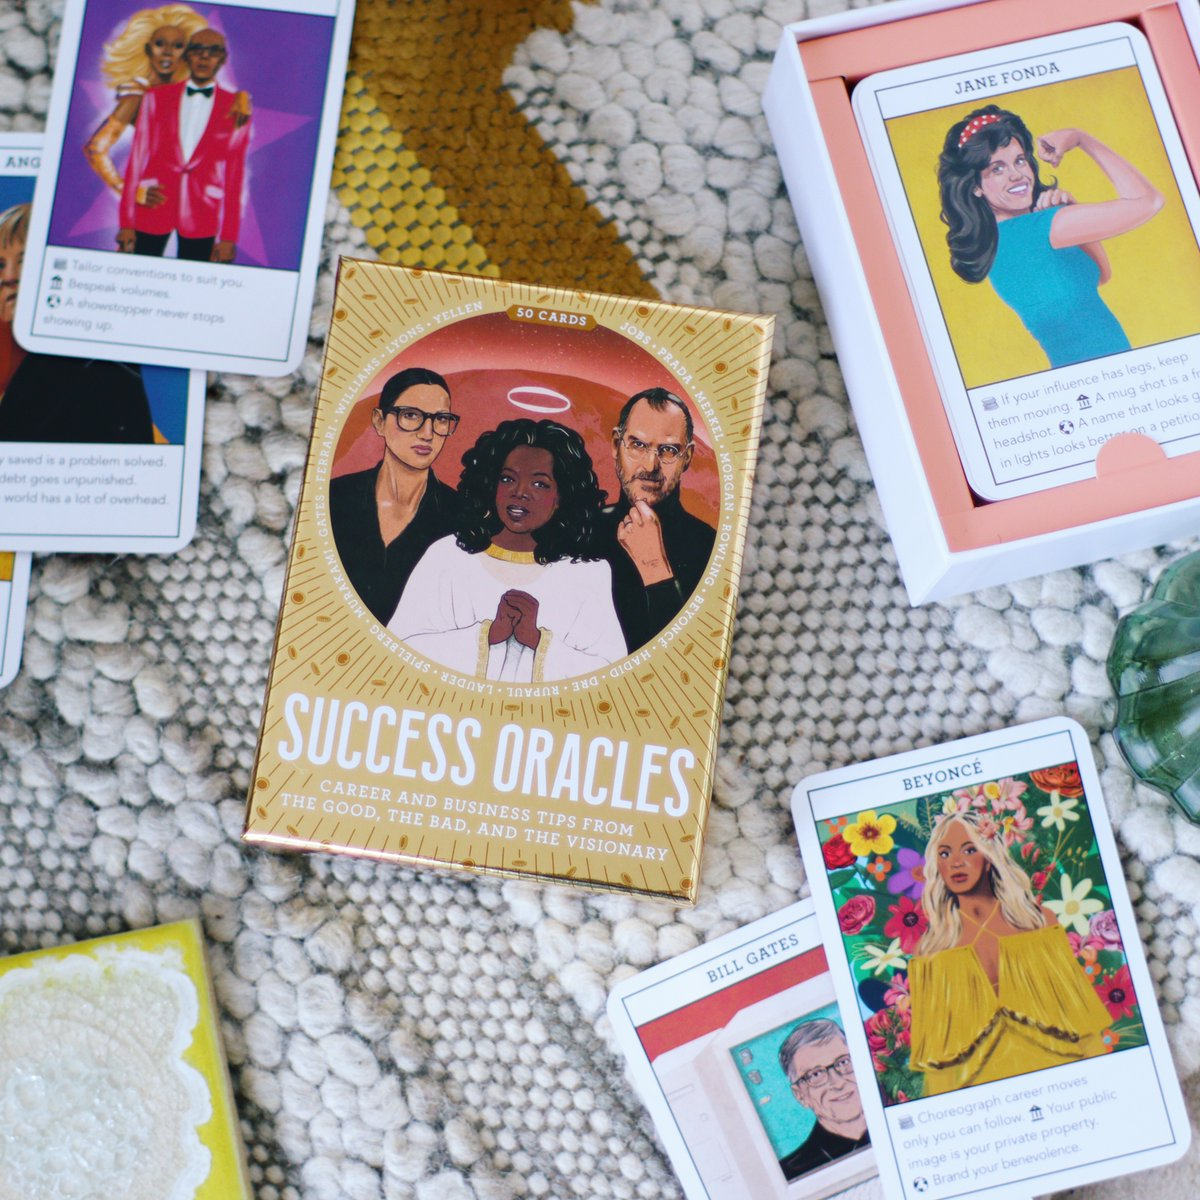 Be guided and inspired by the world's richest and most powerful people with this creative set of oracle cards! 'Success Oracles' is out today: https://bit.ly/2HxUssW #SuccessOracles #business #success #careeradvice #oracles #oraclecards